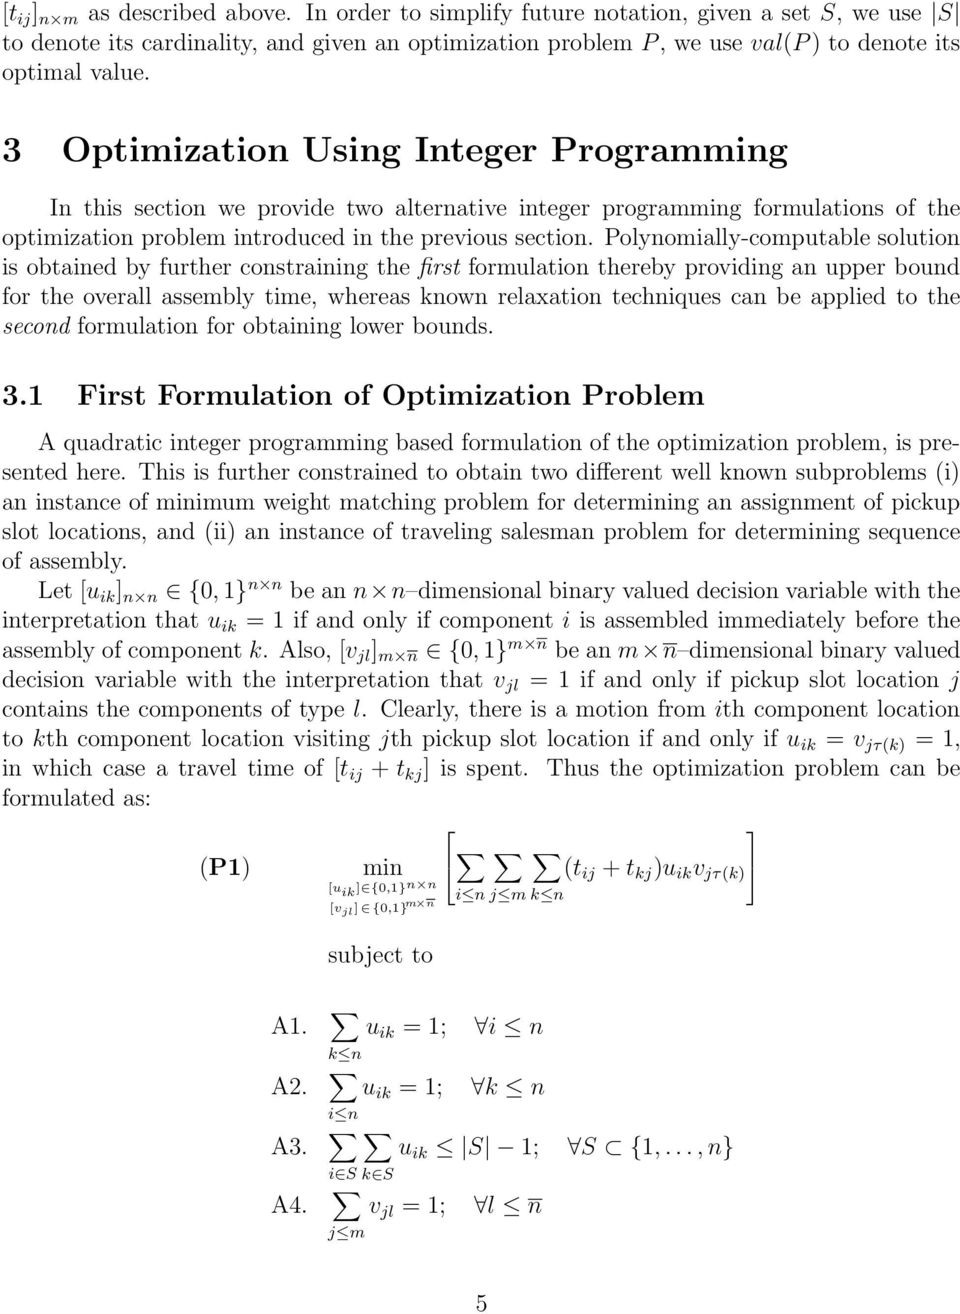 3 Optimization Using Integer Programming In this section we provide two alternative integer programming formulations of the optimization problem introduced in the previous section.